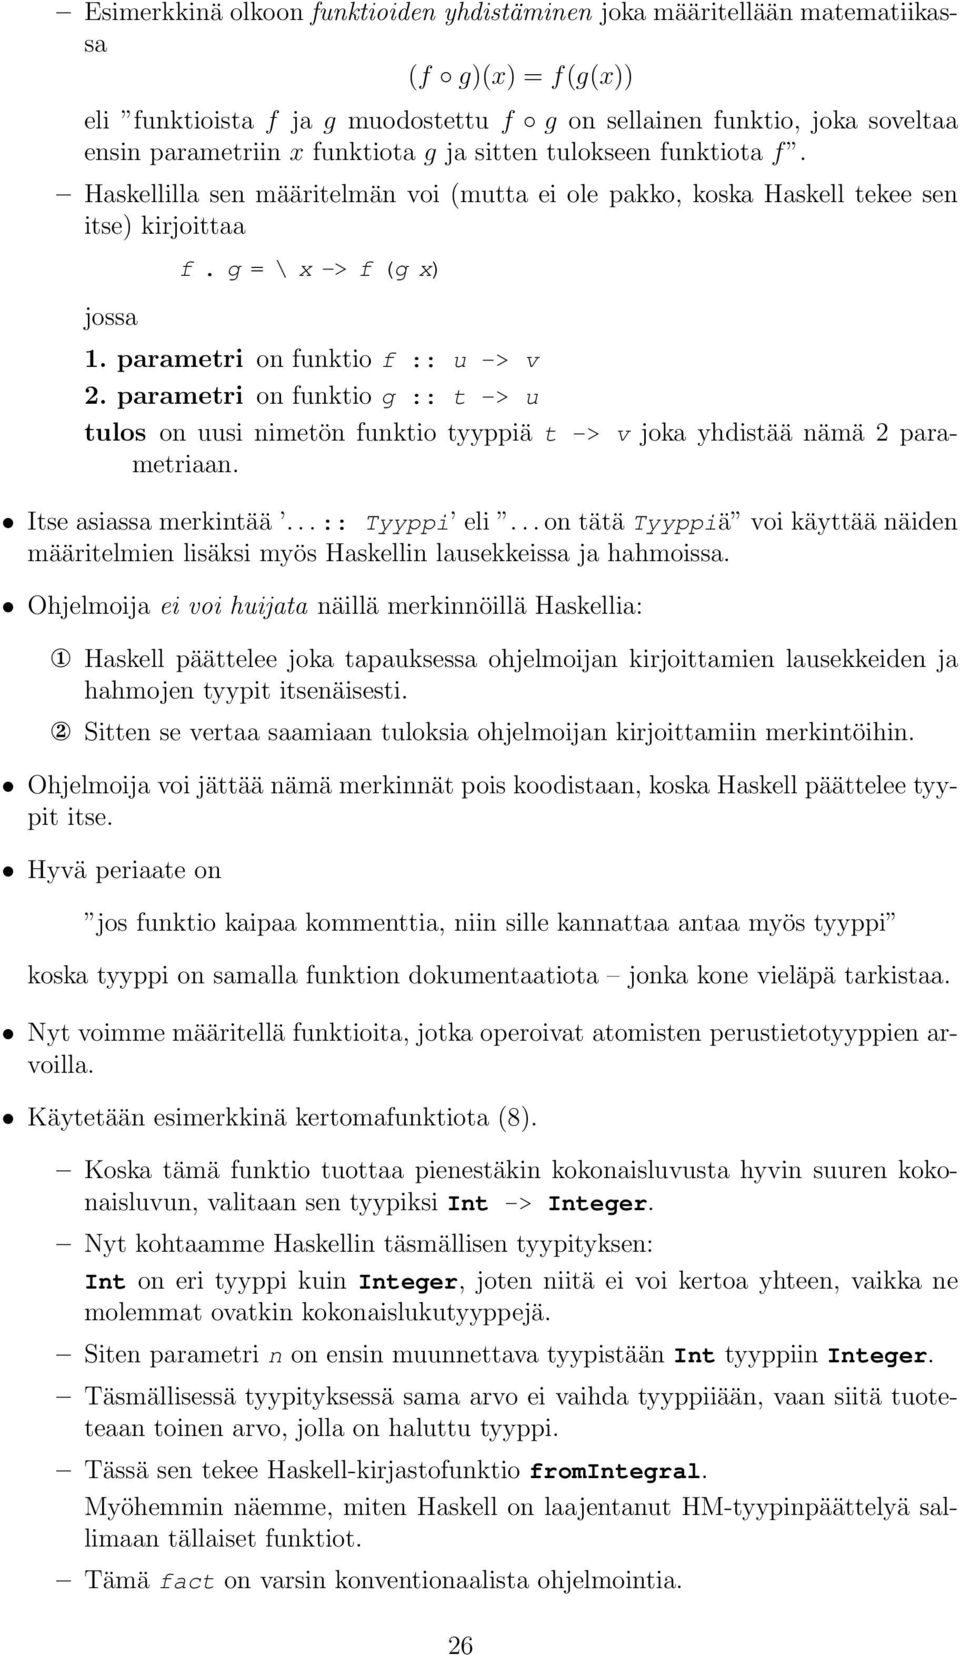 parametri on funktio f :: u -> v 2. parametri on funktio g :: t -> u tulos on uusi nimetön funktio tyyppiä t -> v joka yhdistää nämä 2 parametriaan. Itse asiassa merkintää...:: Tyyppi eli.